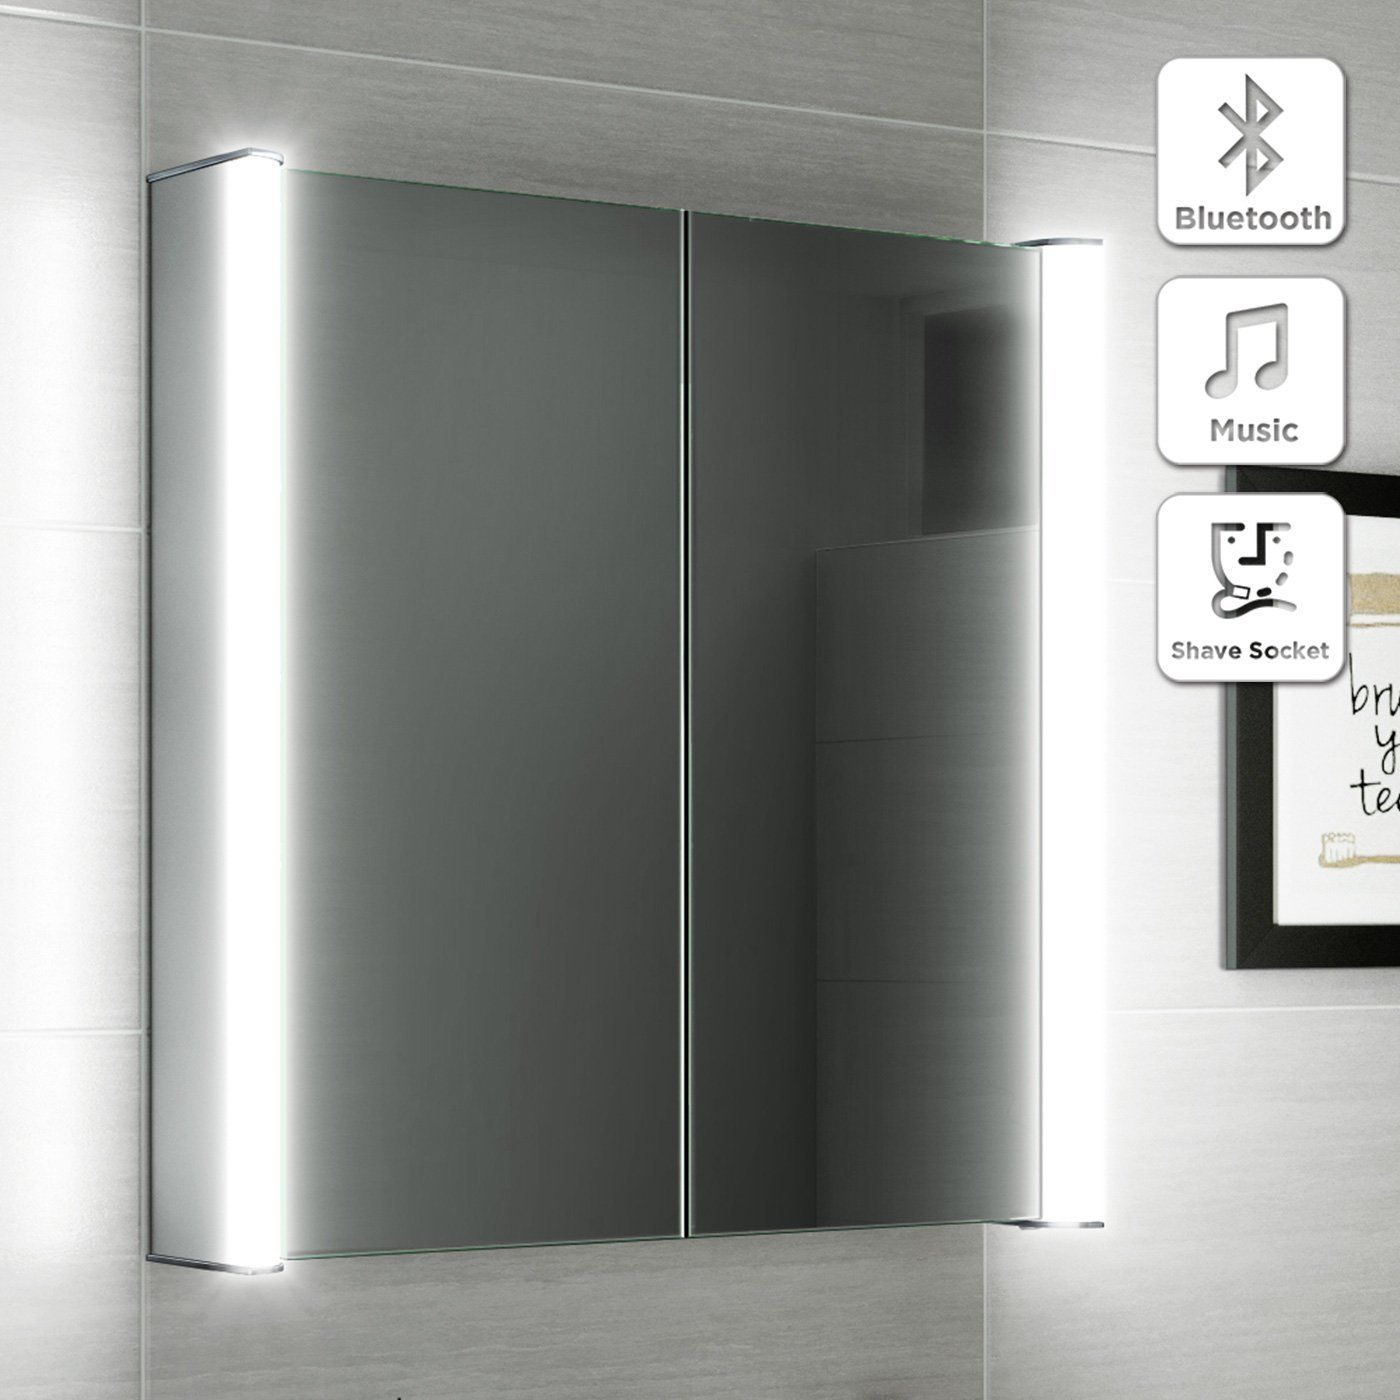 600 x 650 illuminated led bathroom mirror cabinet + shaver socket